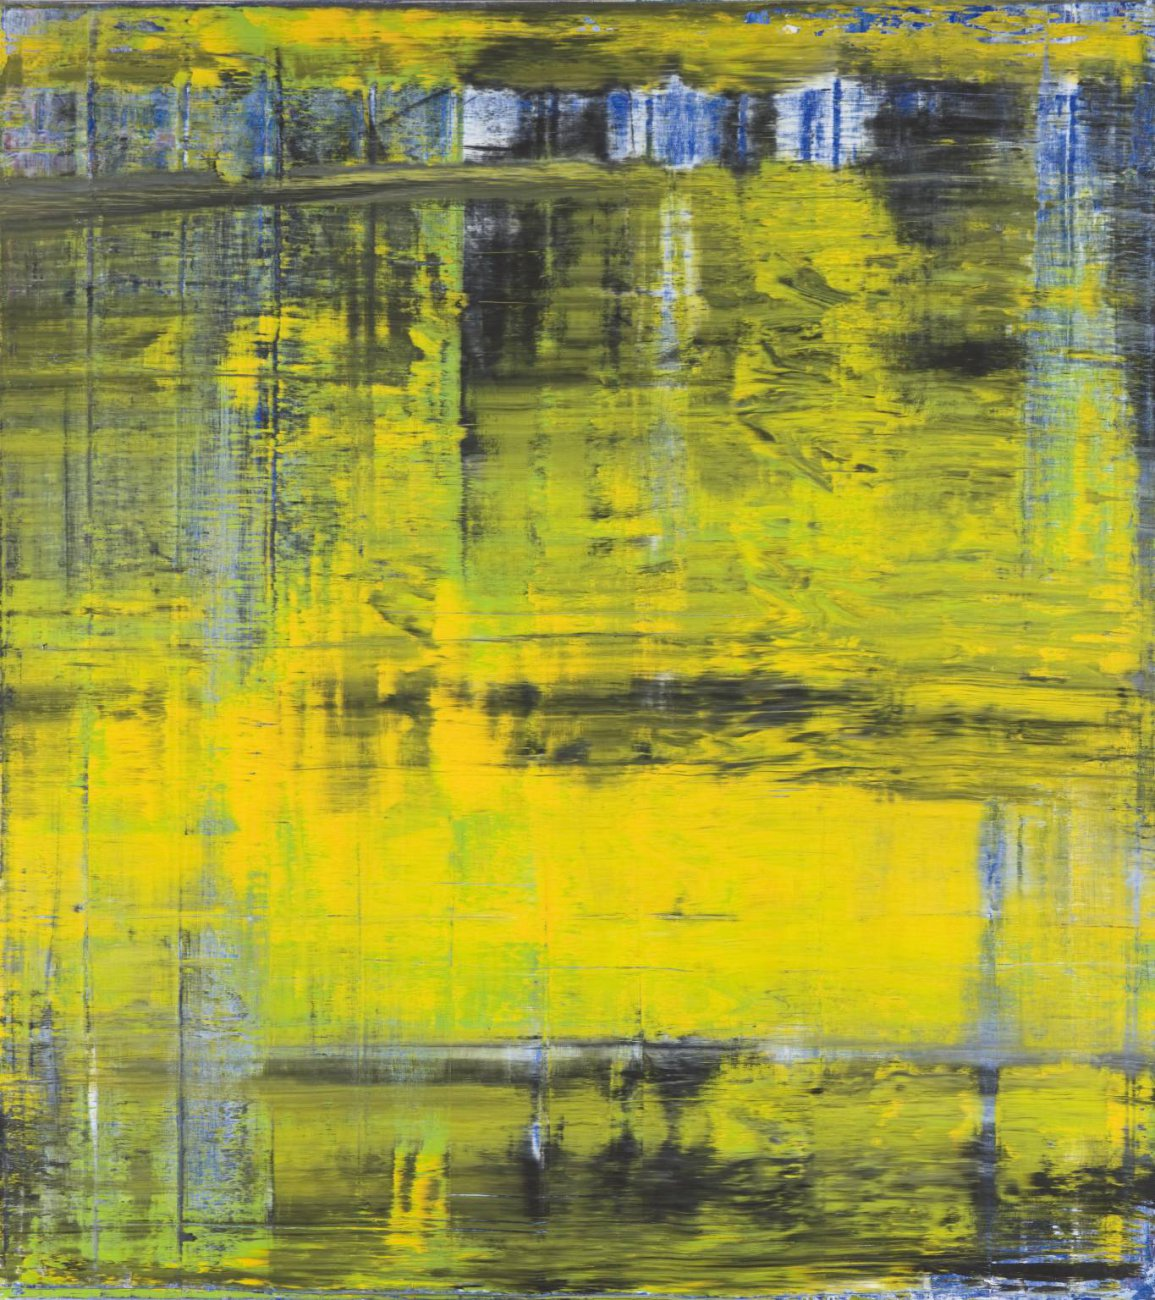 gerhard richter paintingAR00027_10.jpg